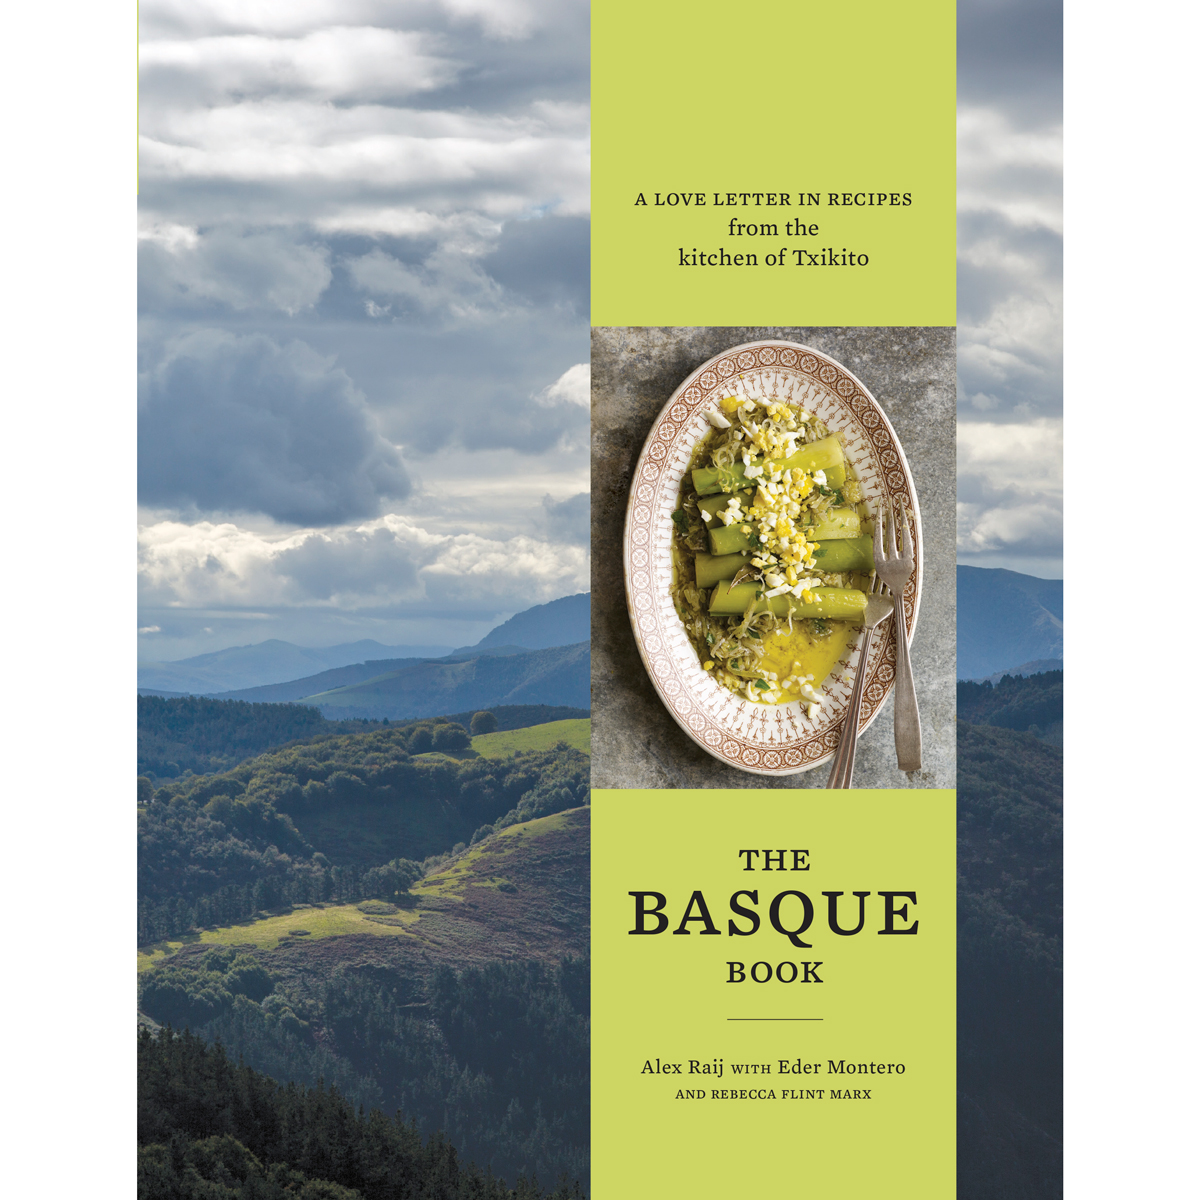 The Basque Book by Alex Raij